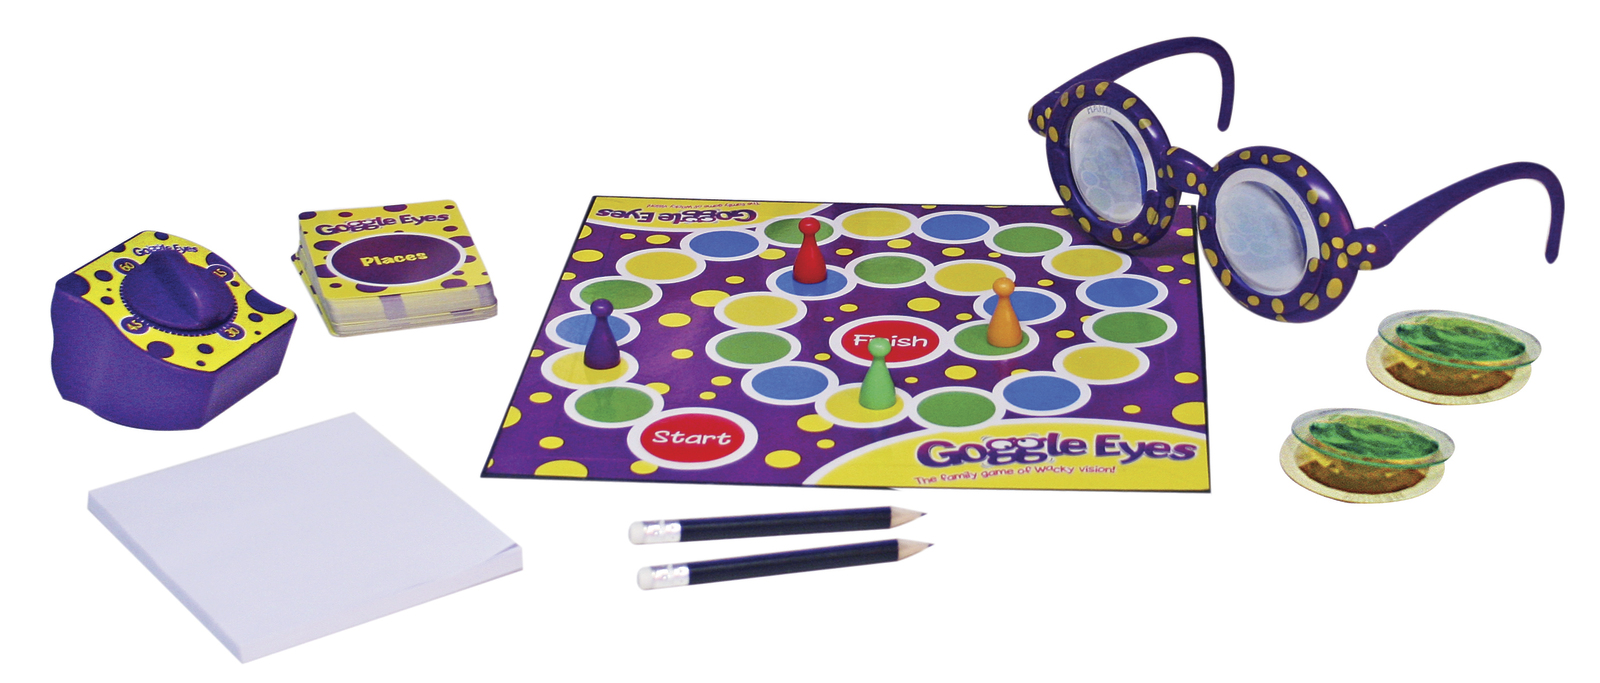 how to play eye know board game